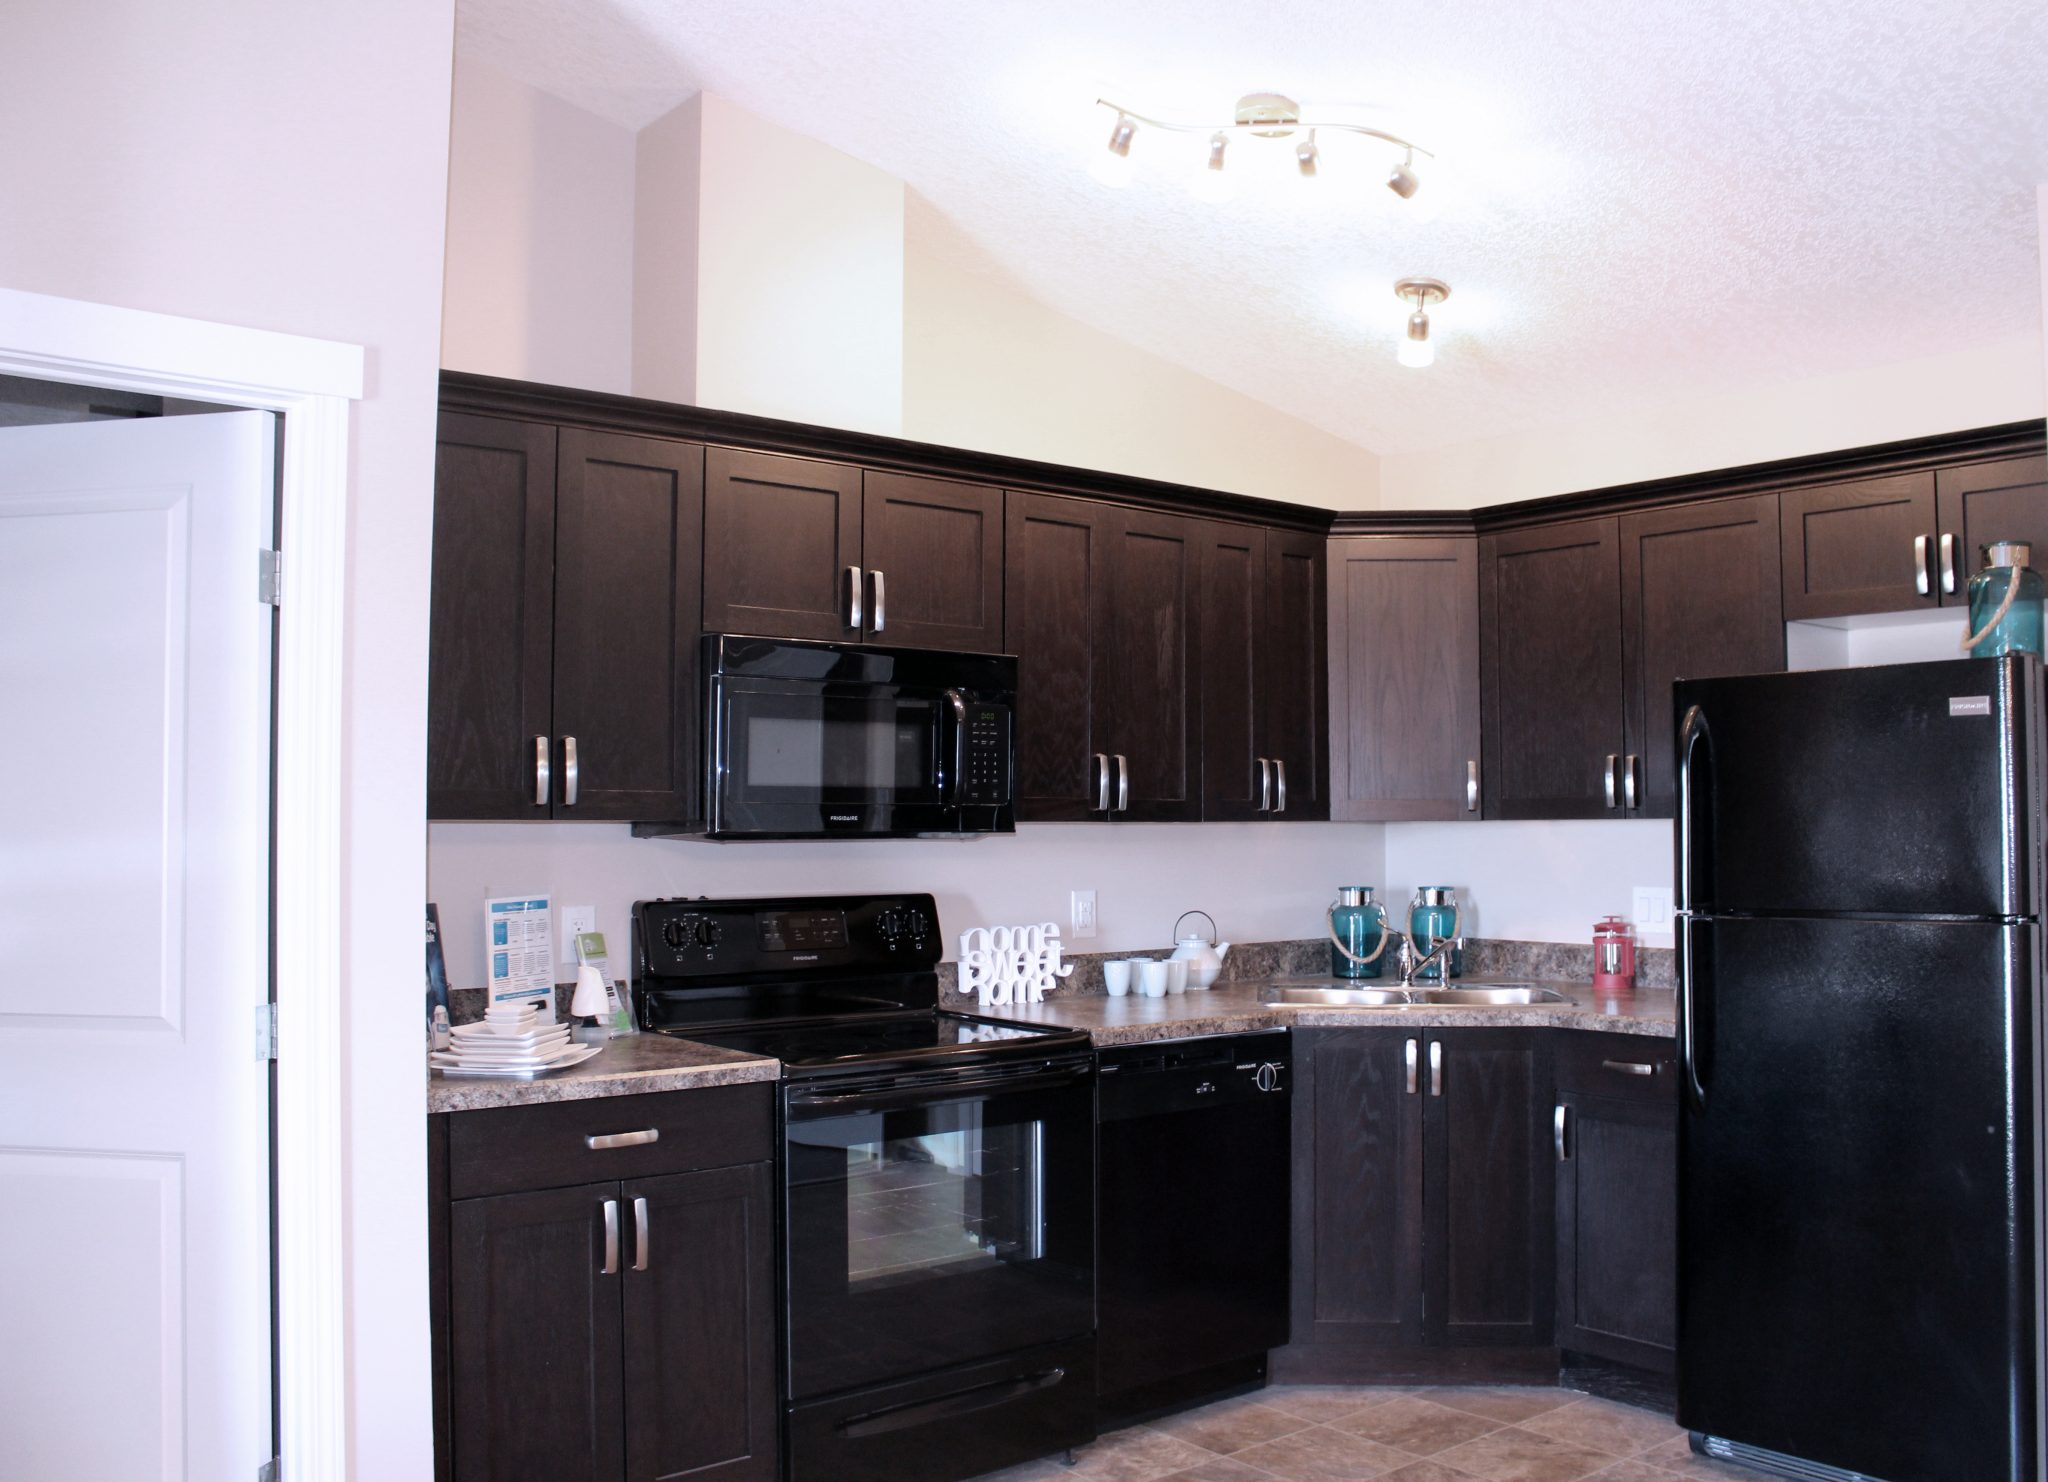 Orion - 2 Bedroom - Starting at $200,000